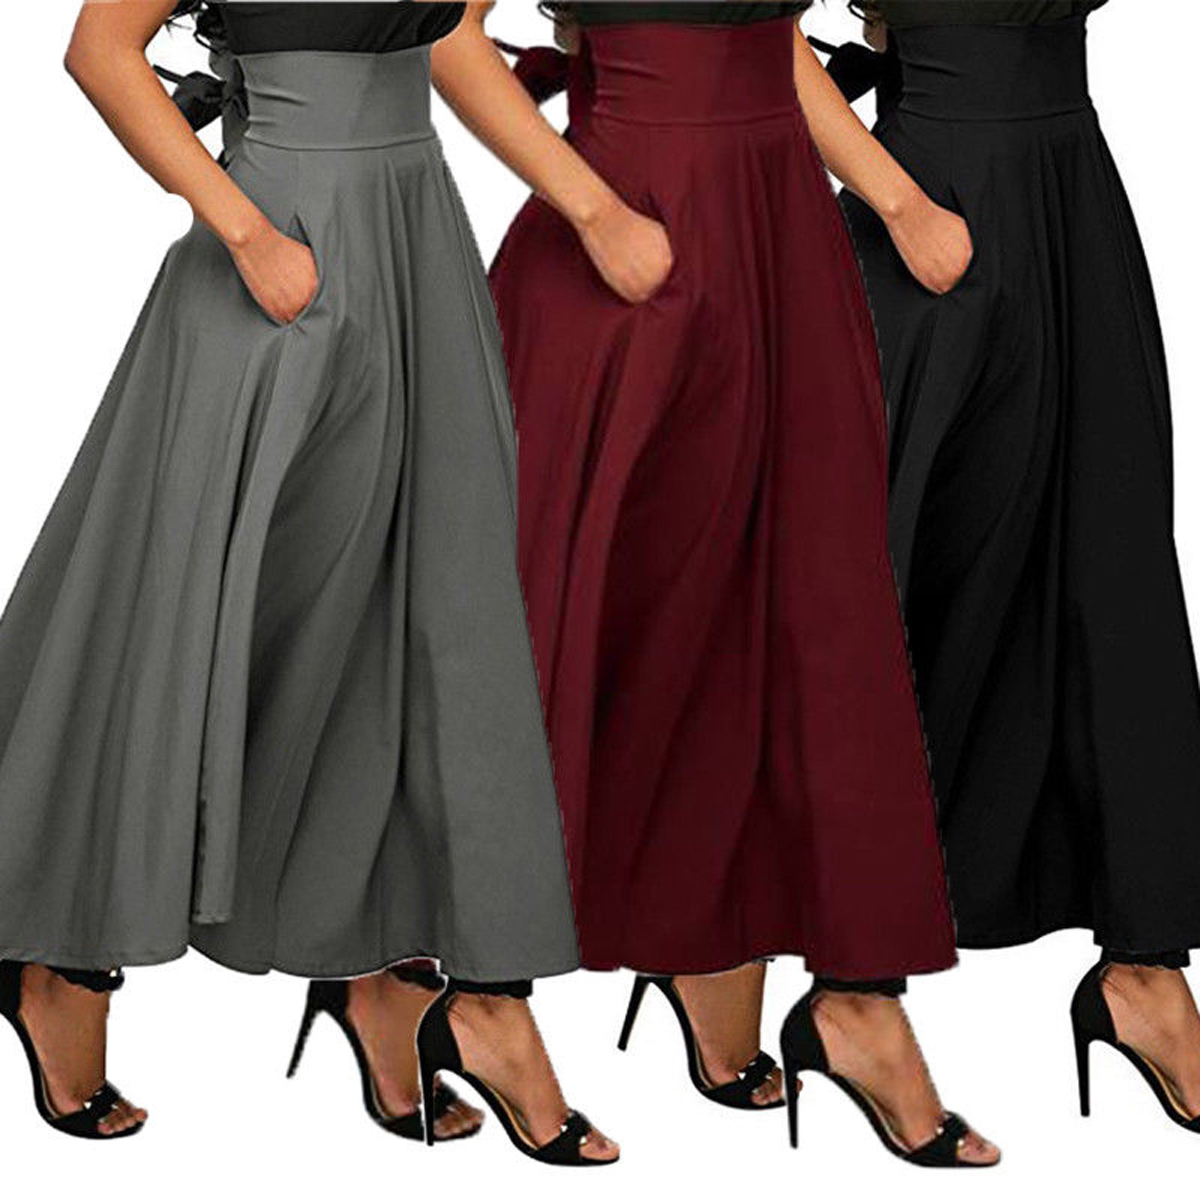 38337c682 Details about USA High Waist Pleated Long Skirts Women Flared Full Maxi  Skirt Swing Dress